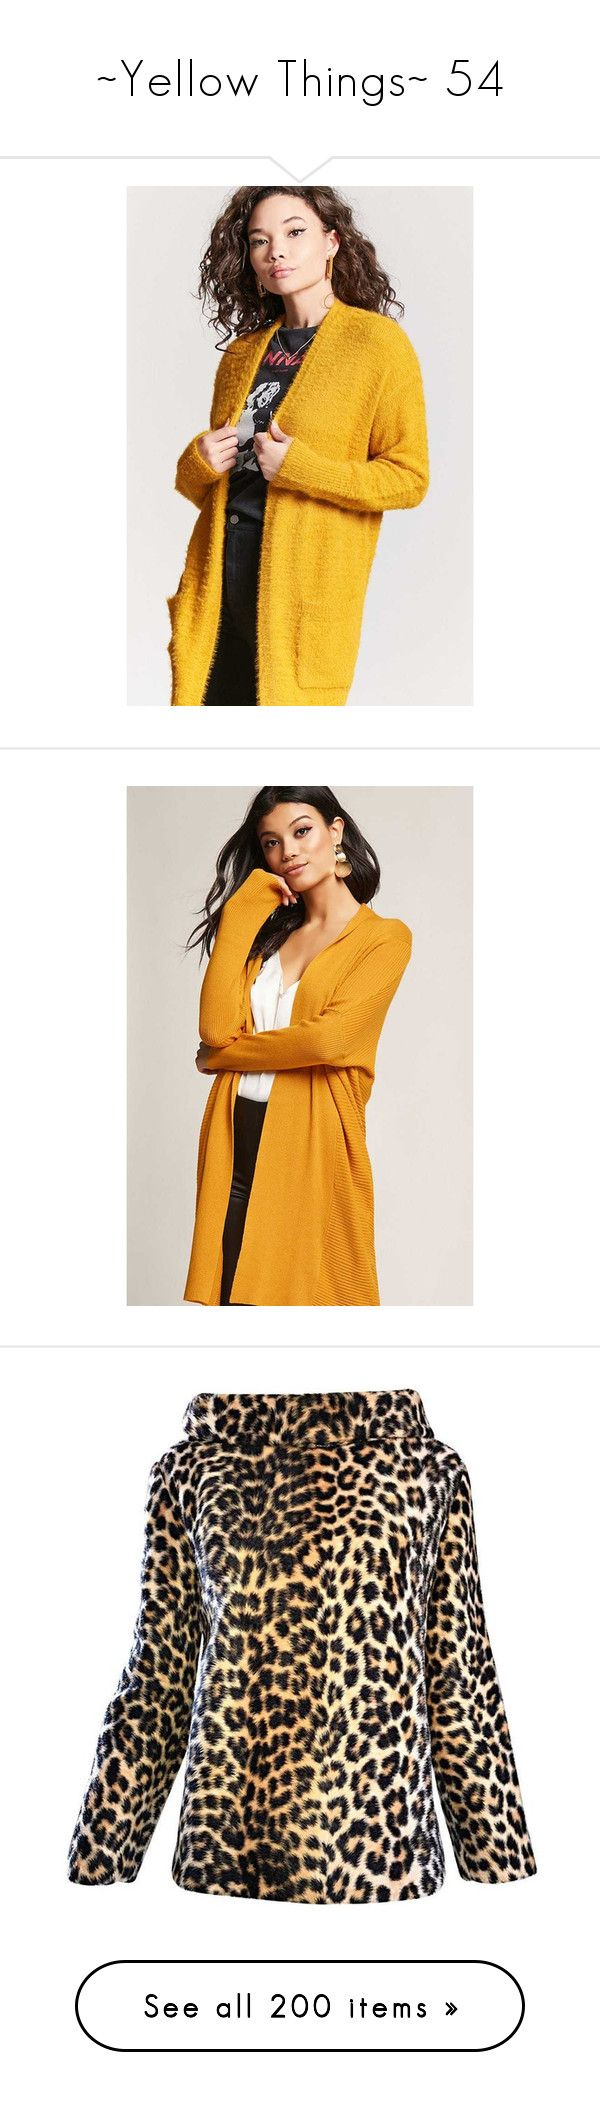 """""""~Yellow Things~ 54"""" by my-shiny-shackles on Polyvore featuring yellow, tops, cardigans, mustard, long sleeve cardigan, knit cardigan, forever 21 cardigans, fuzzy cardigan, mustard yellow cardigans and mustard yellow long cardigan"""